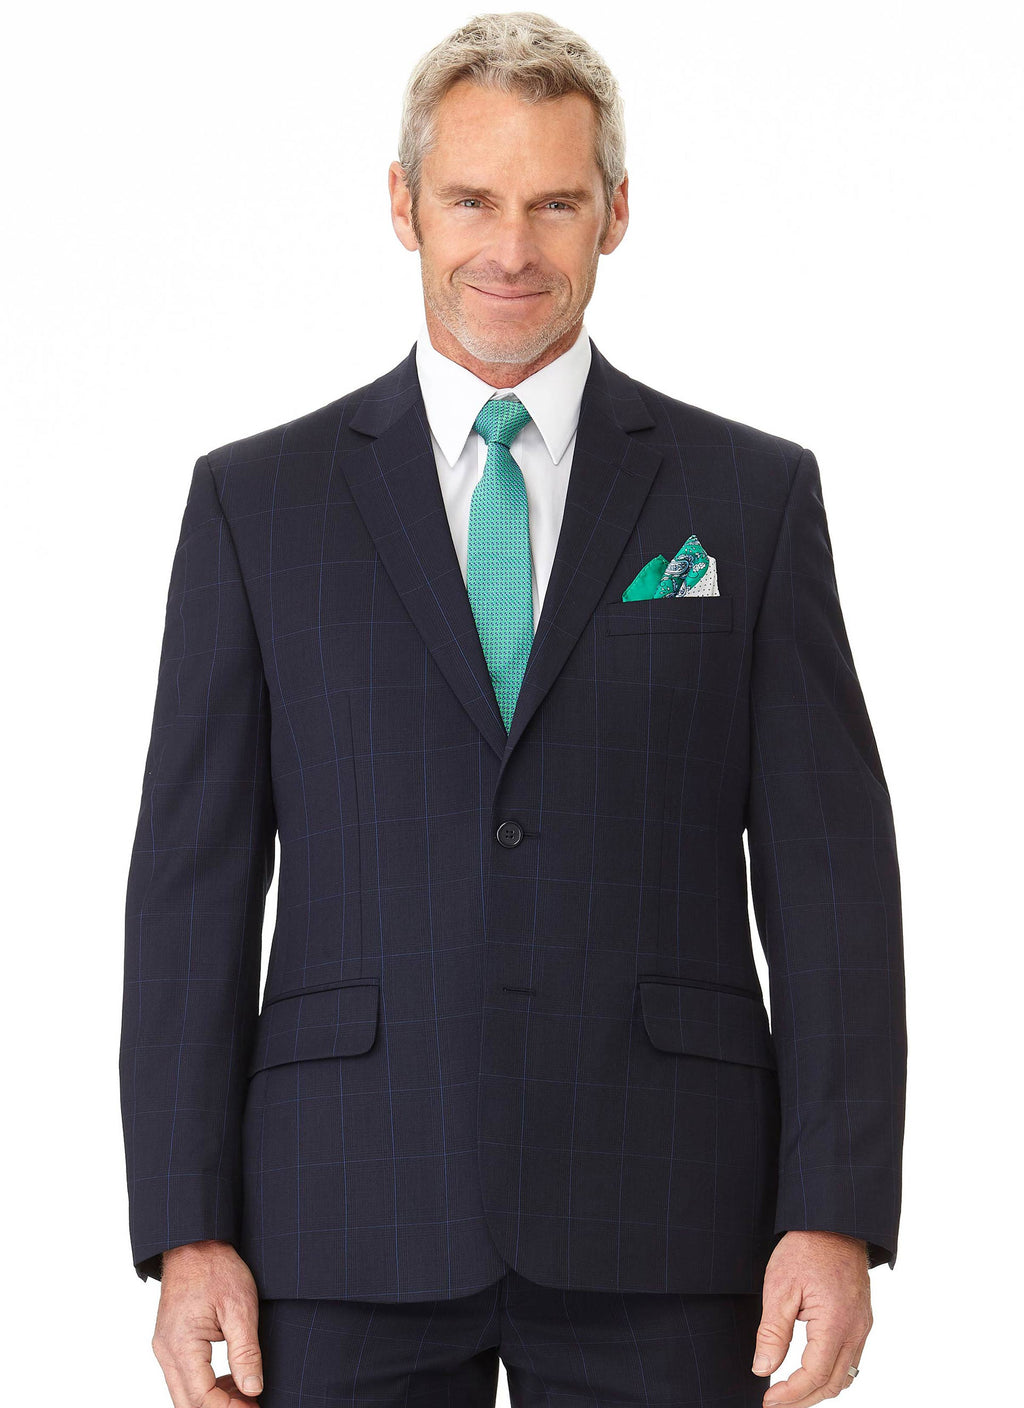 OTWAY CONTEMPORARY FIT JACKET - NAVY WINDOWPANE